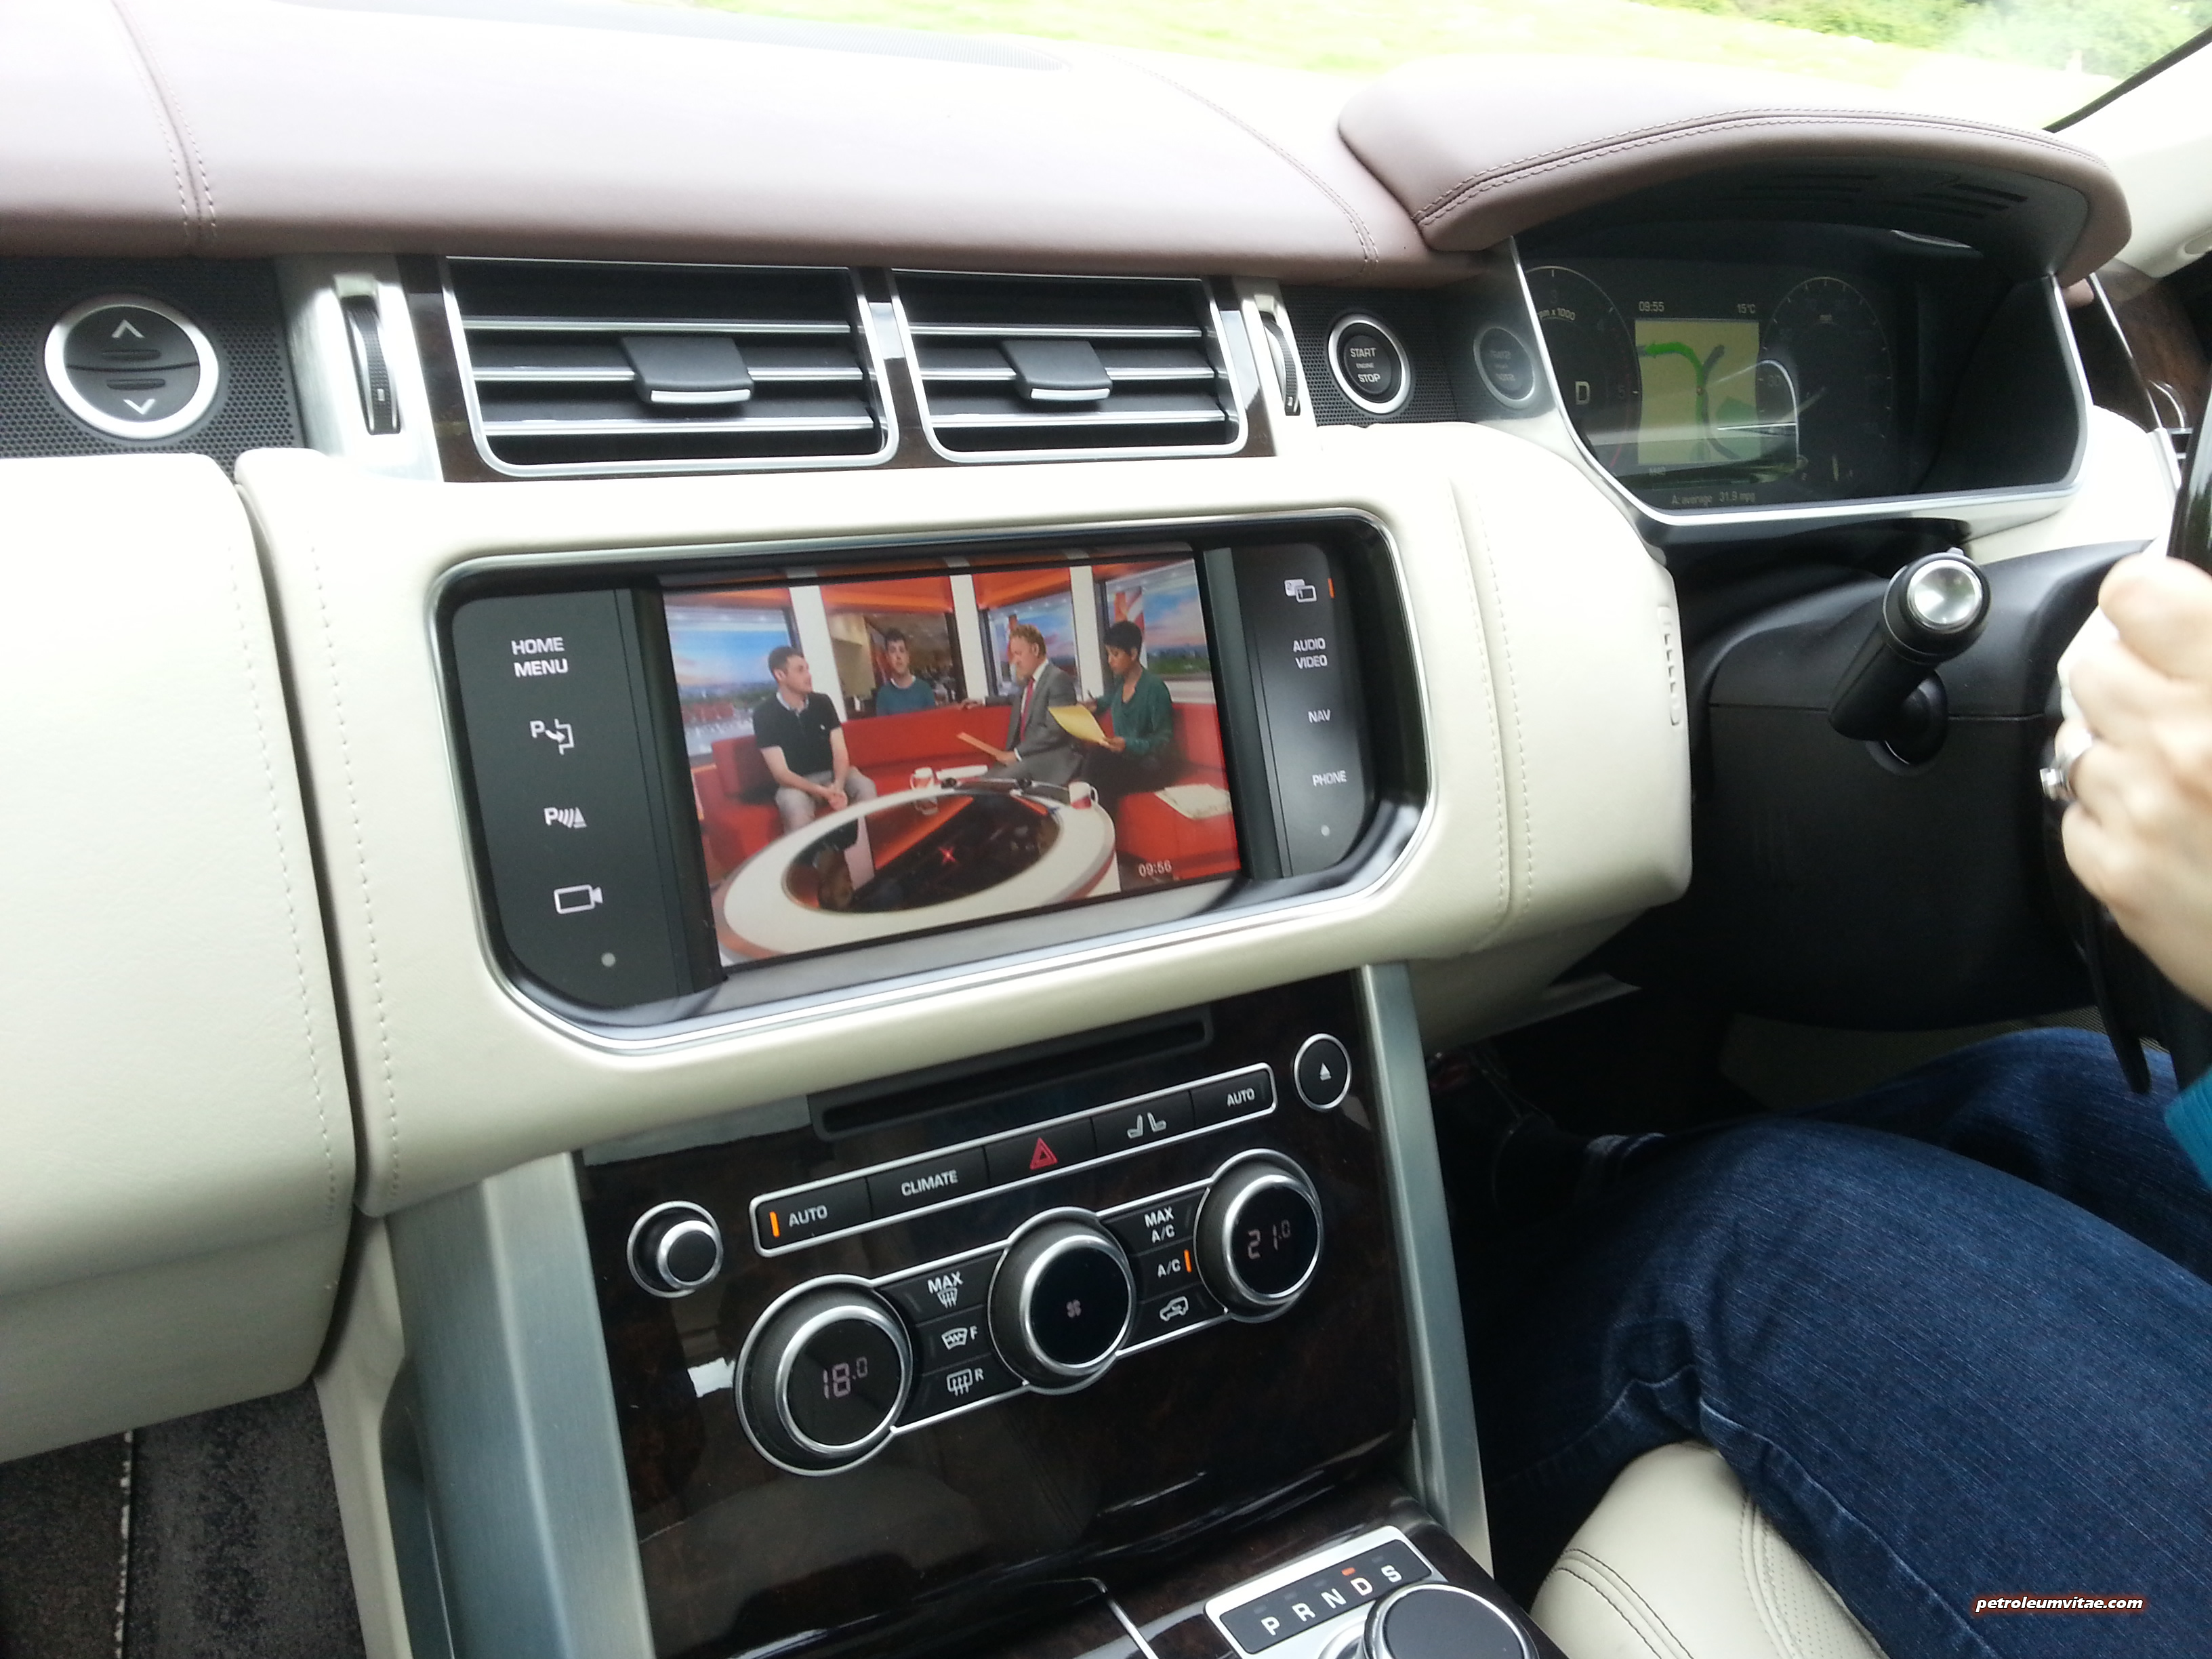 e day Six hundred and fifty miles A Range Rover SDV8